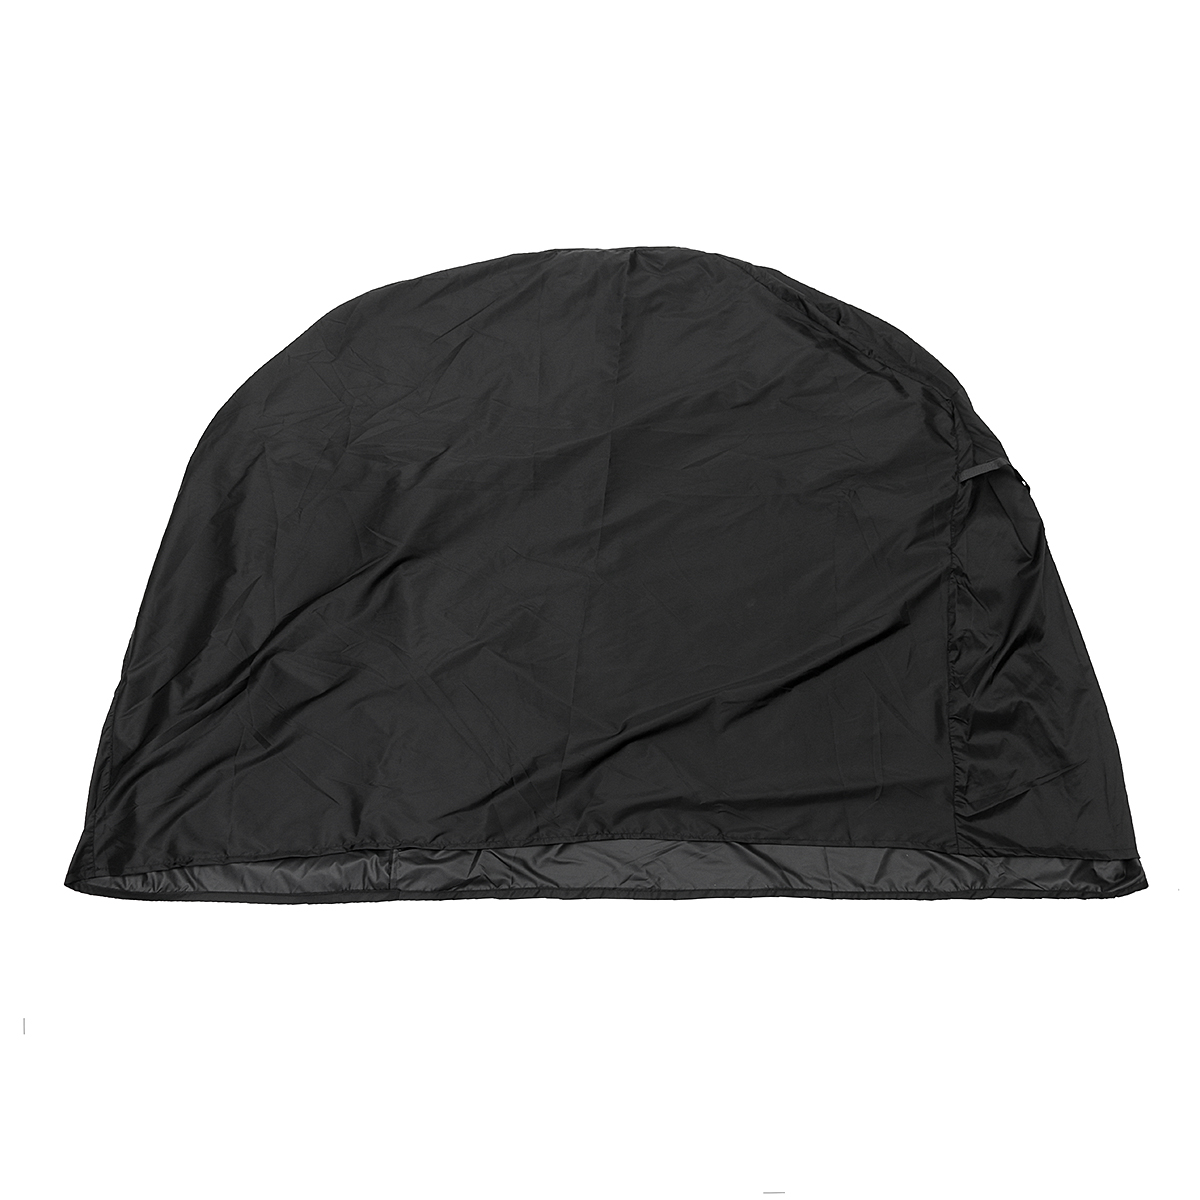 164x76.2x153cm Outdoor Gas Grills Waterproof Cover BBQ Grill Protective Cover